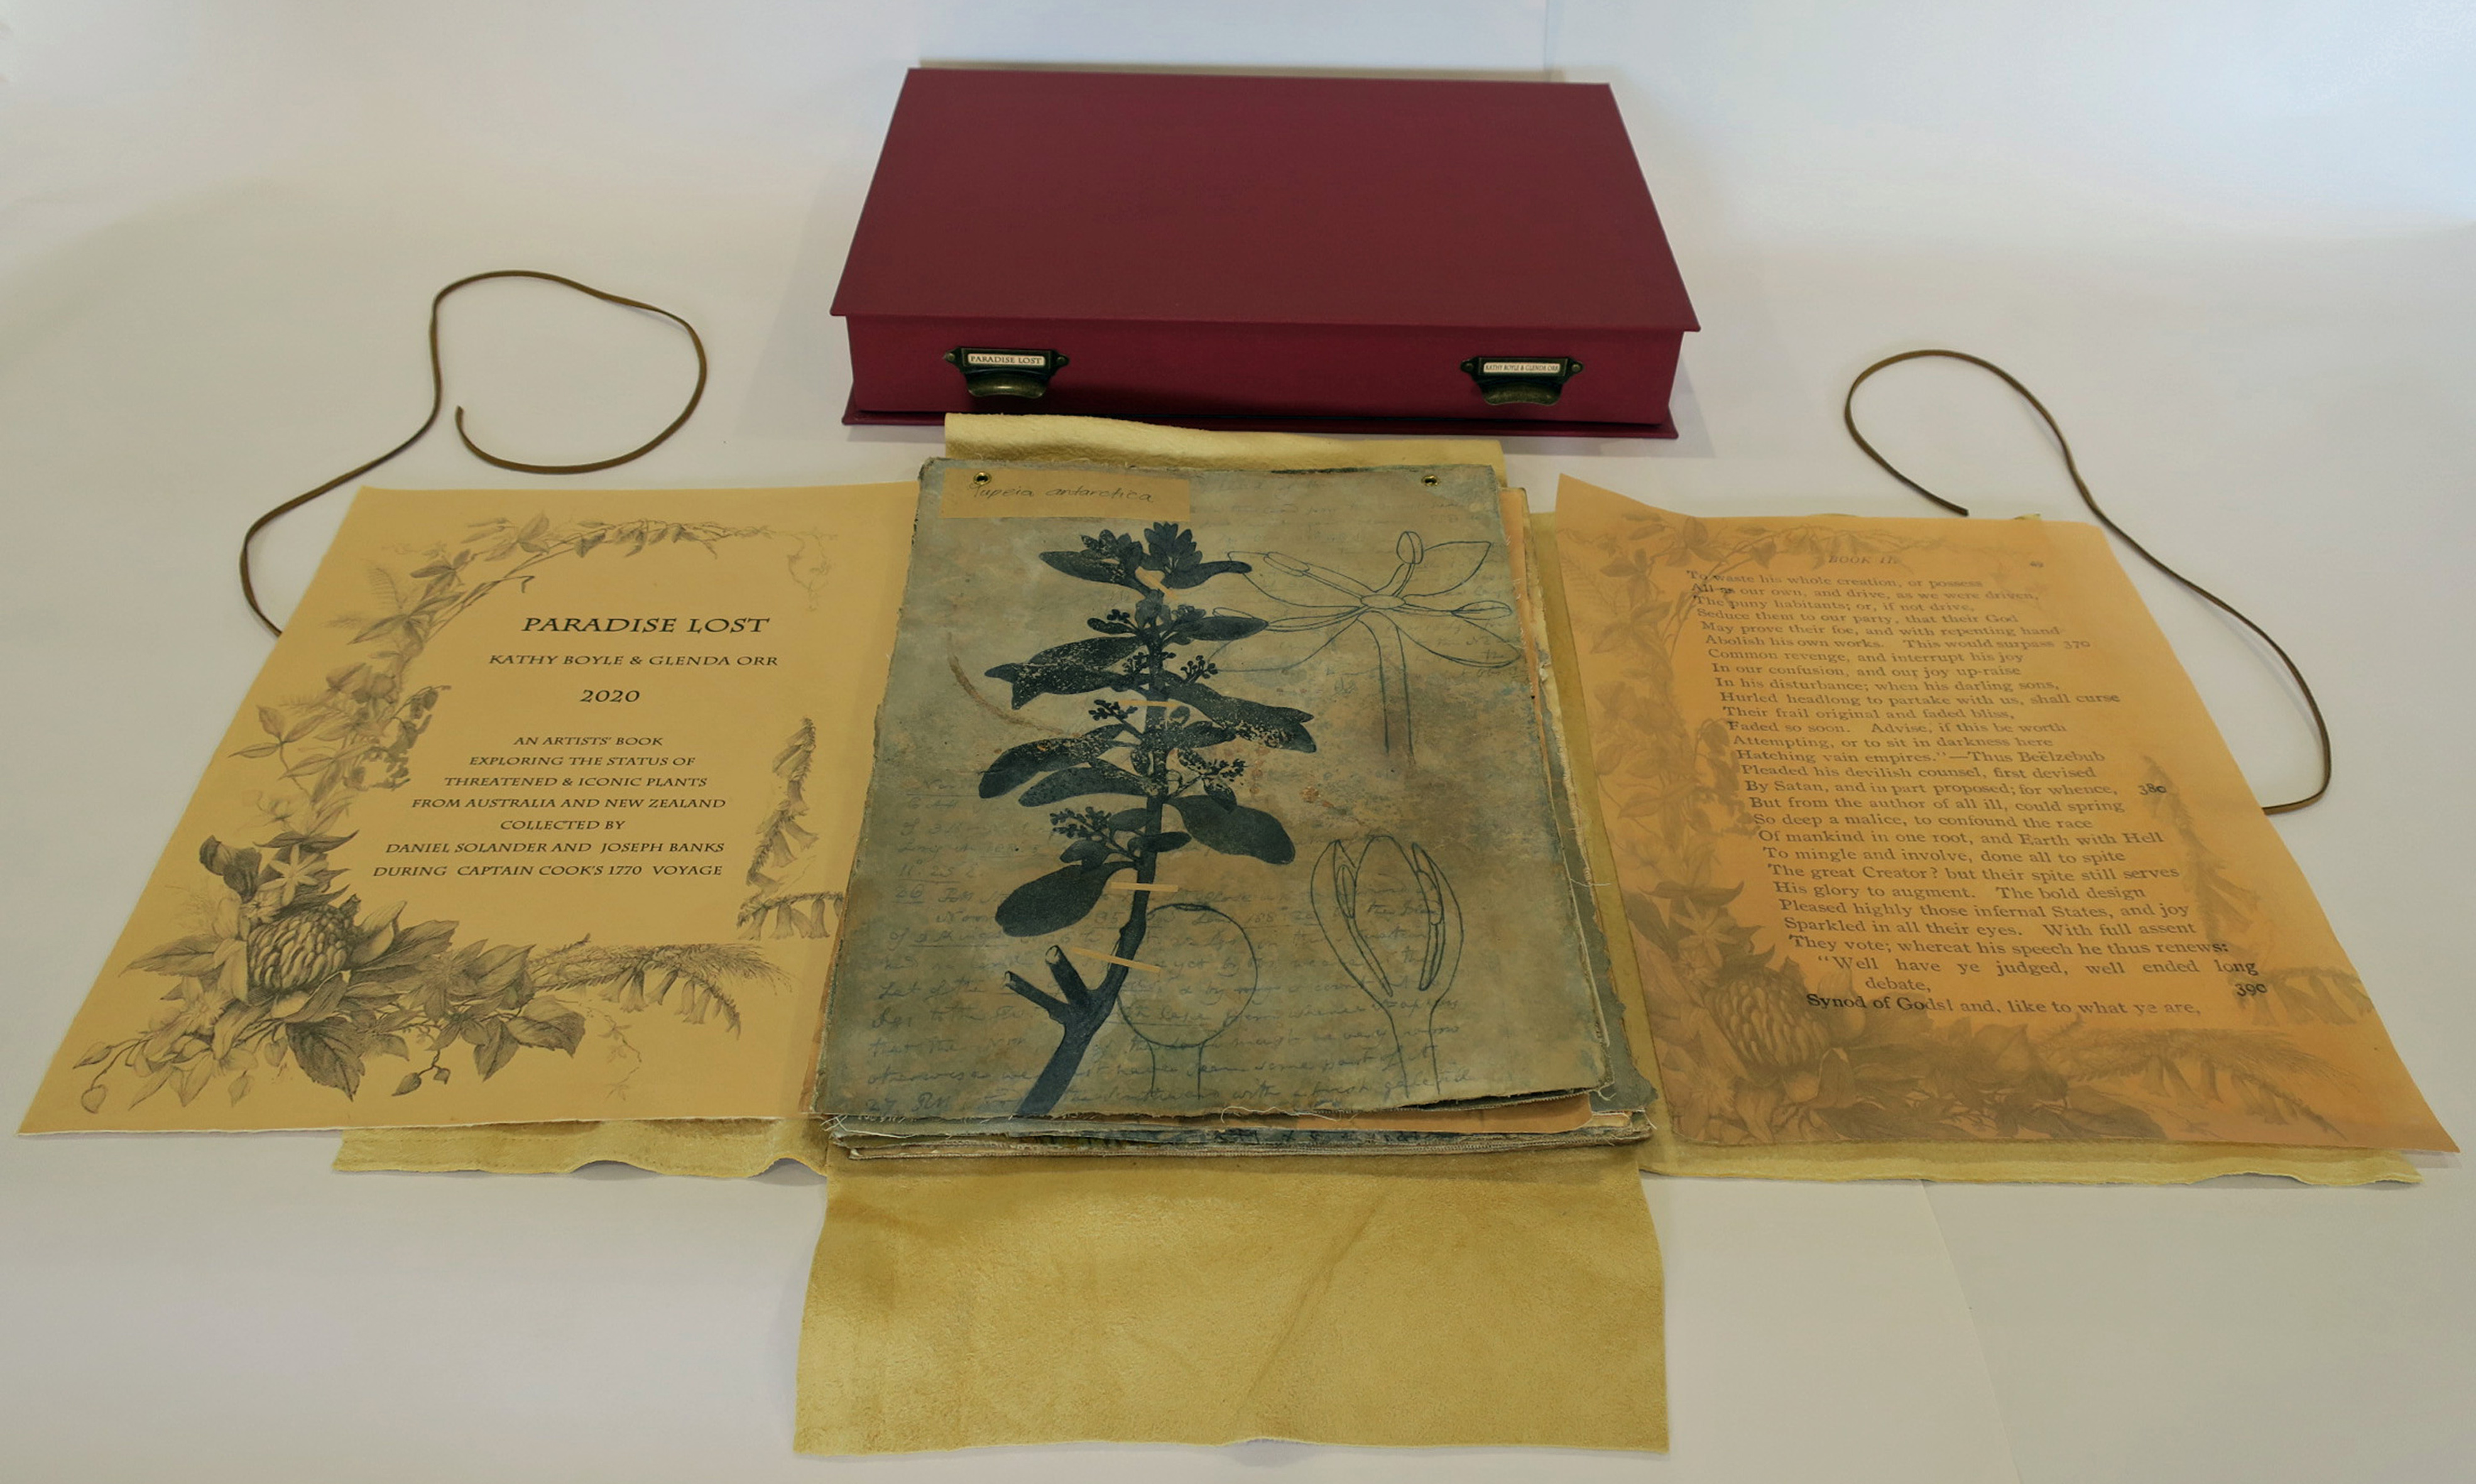 Boyle-Orr_Kathy-Glenda_Paradise Lost_open book and Solander box